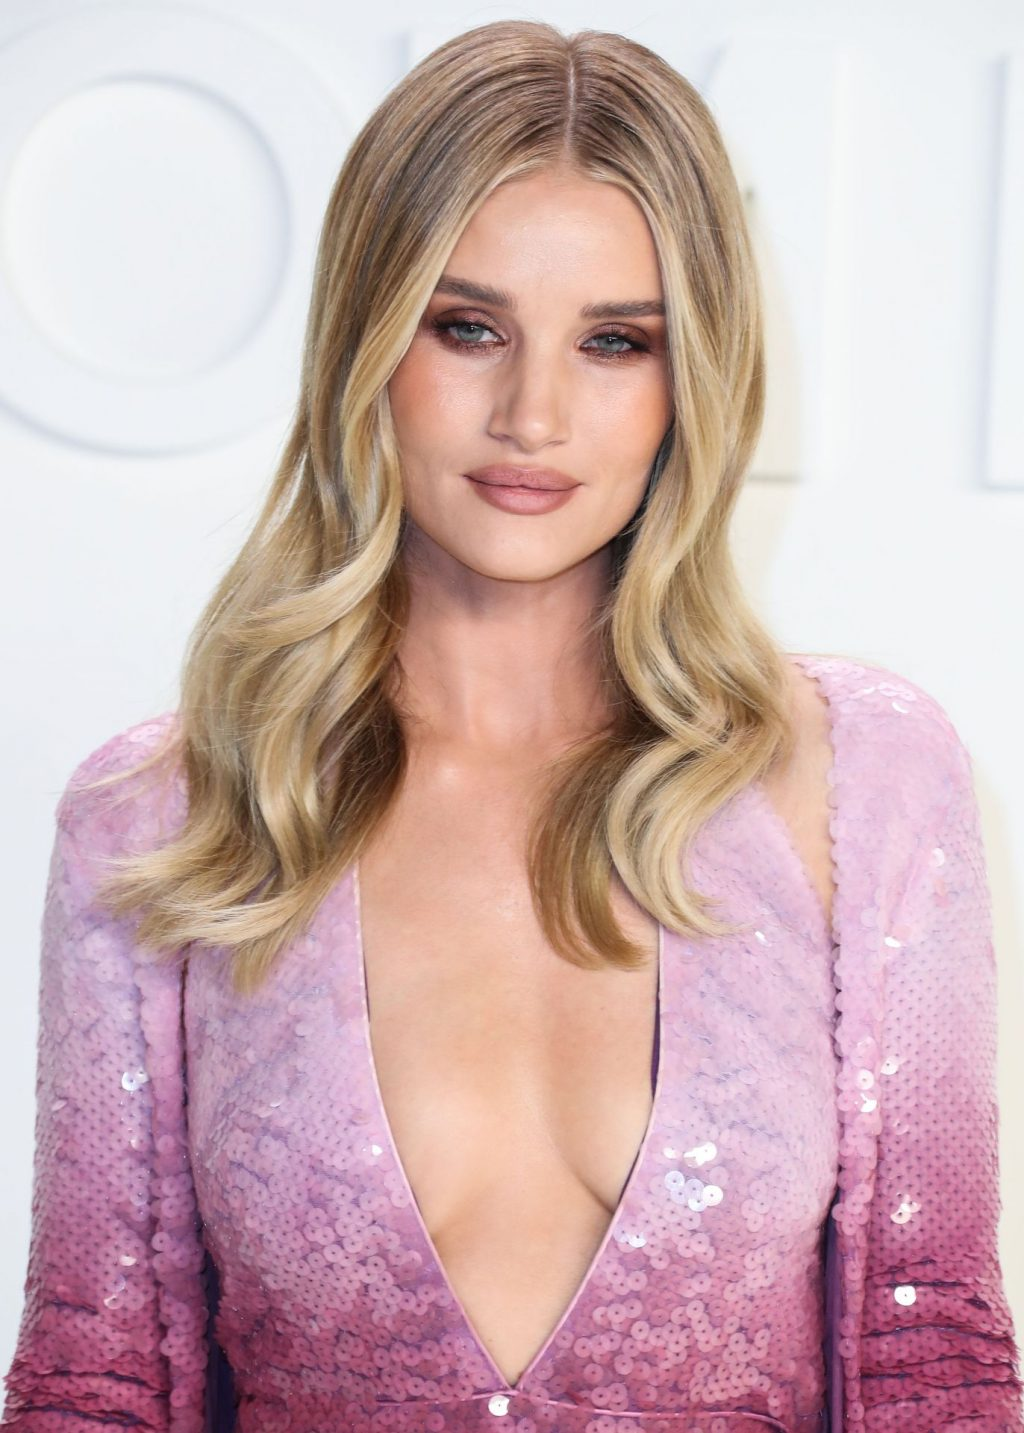 Rosie Huntington Whiteley Sexy The Fappening Blog 84 1024x1433 - Rosie Huntington-Whiteley Shows Her Cleavage at the Tom Ford Fashion Show (115 Photos)